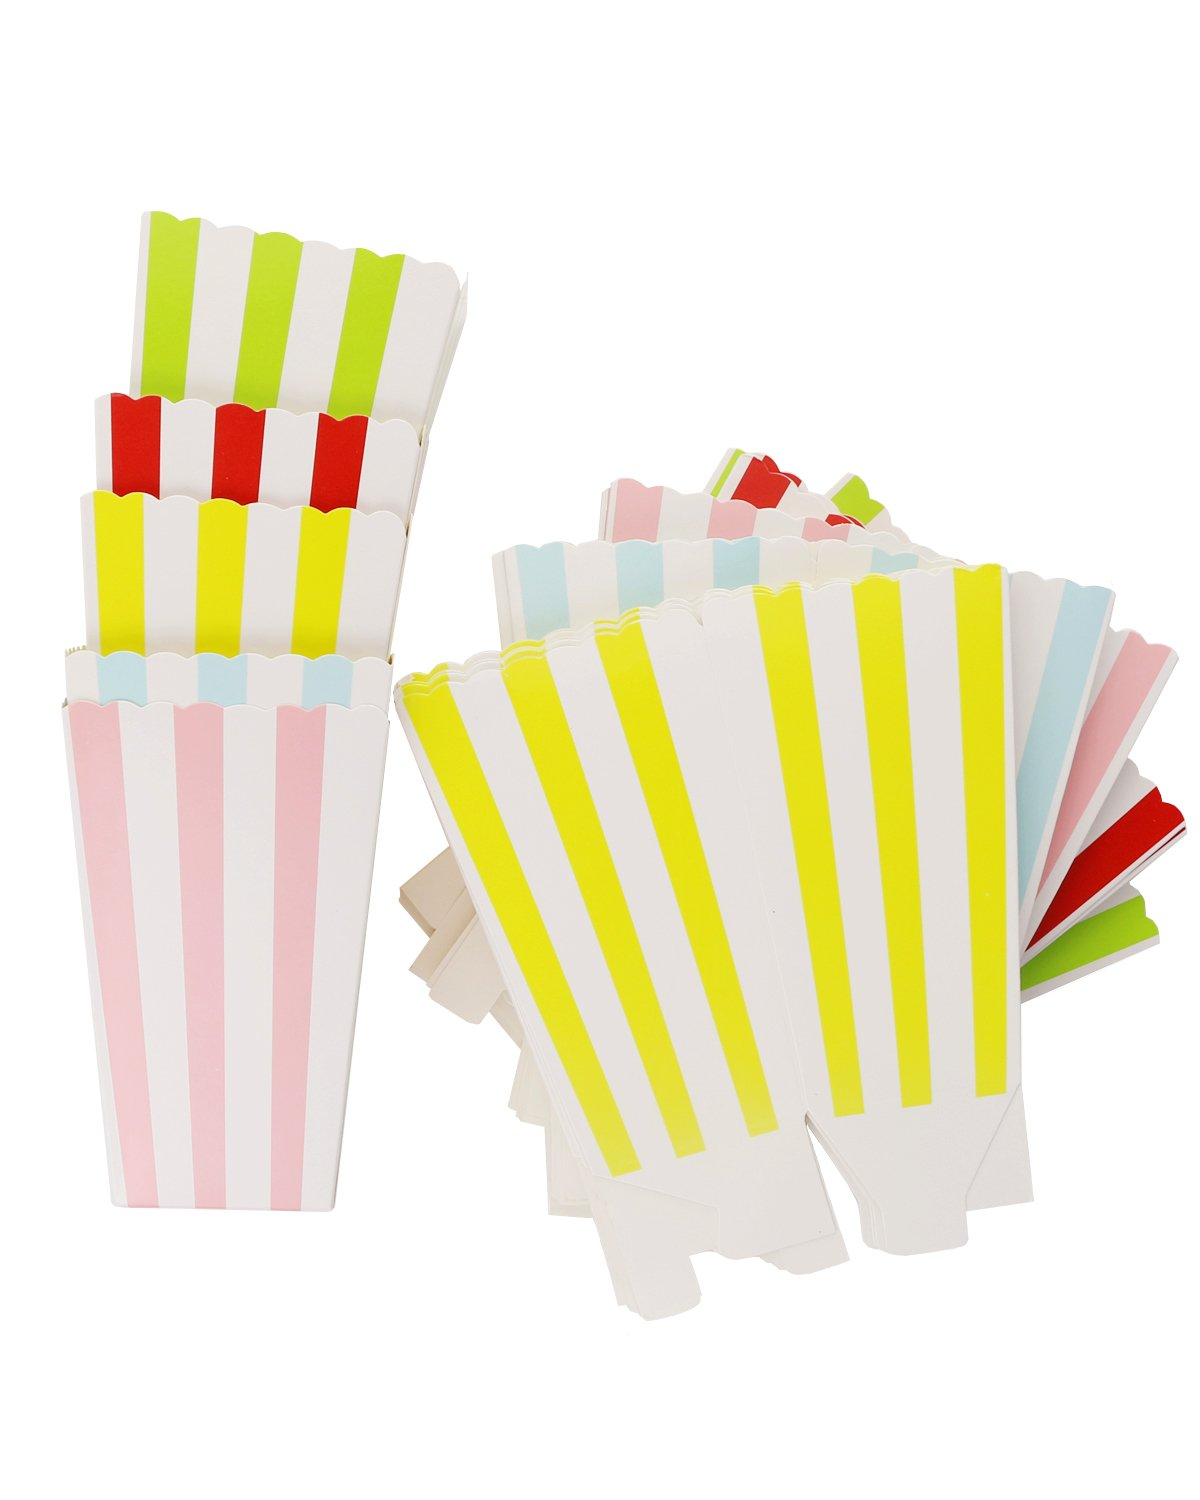 PRALB 60 Pack Popcorn Boxes Cardboard Snack Bowl Candy Container,Sweet Striped for Carnival,Party,Movie,Fiesta